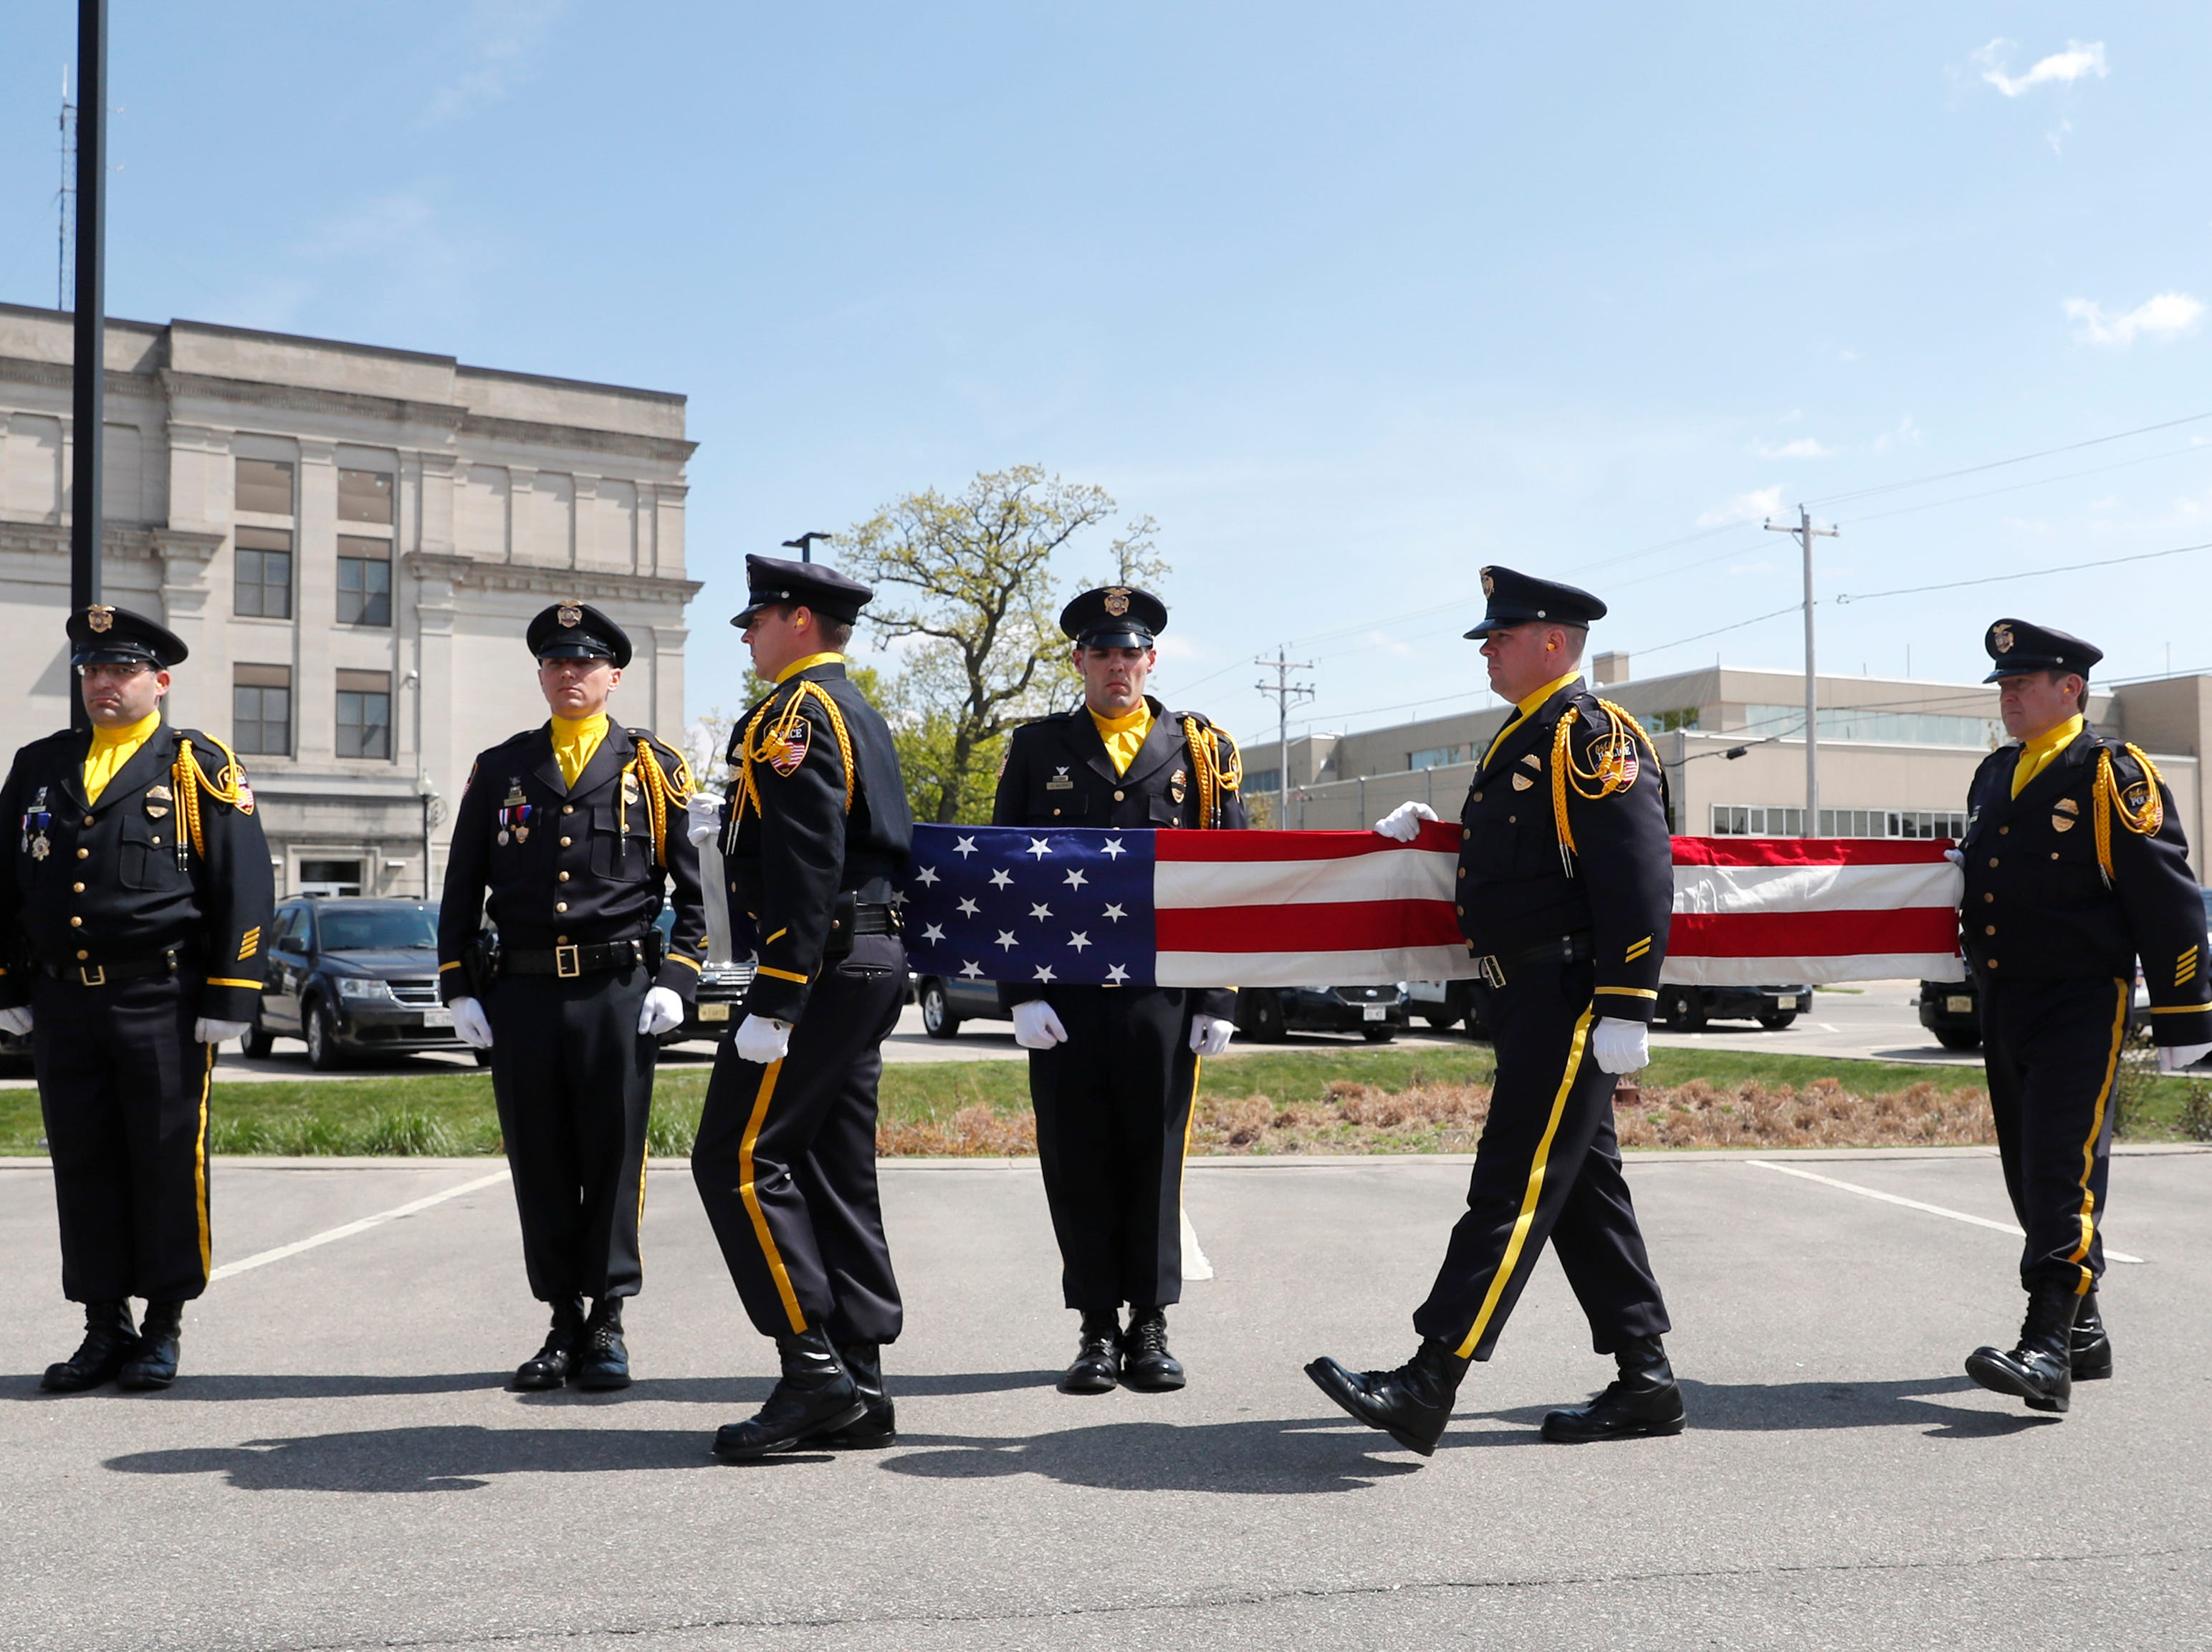 The Oshkosh Police Honor Guard prepares for the folding of the flag during their Law Enforcement Memorial Ceremony Wednesday, May 15, 2019, at the Oshkosh Police Department in Oshkosh, Wis. Danny Damiani/USA TODAY NETWORK-Wisconsin